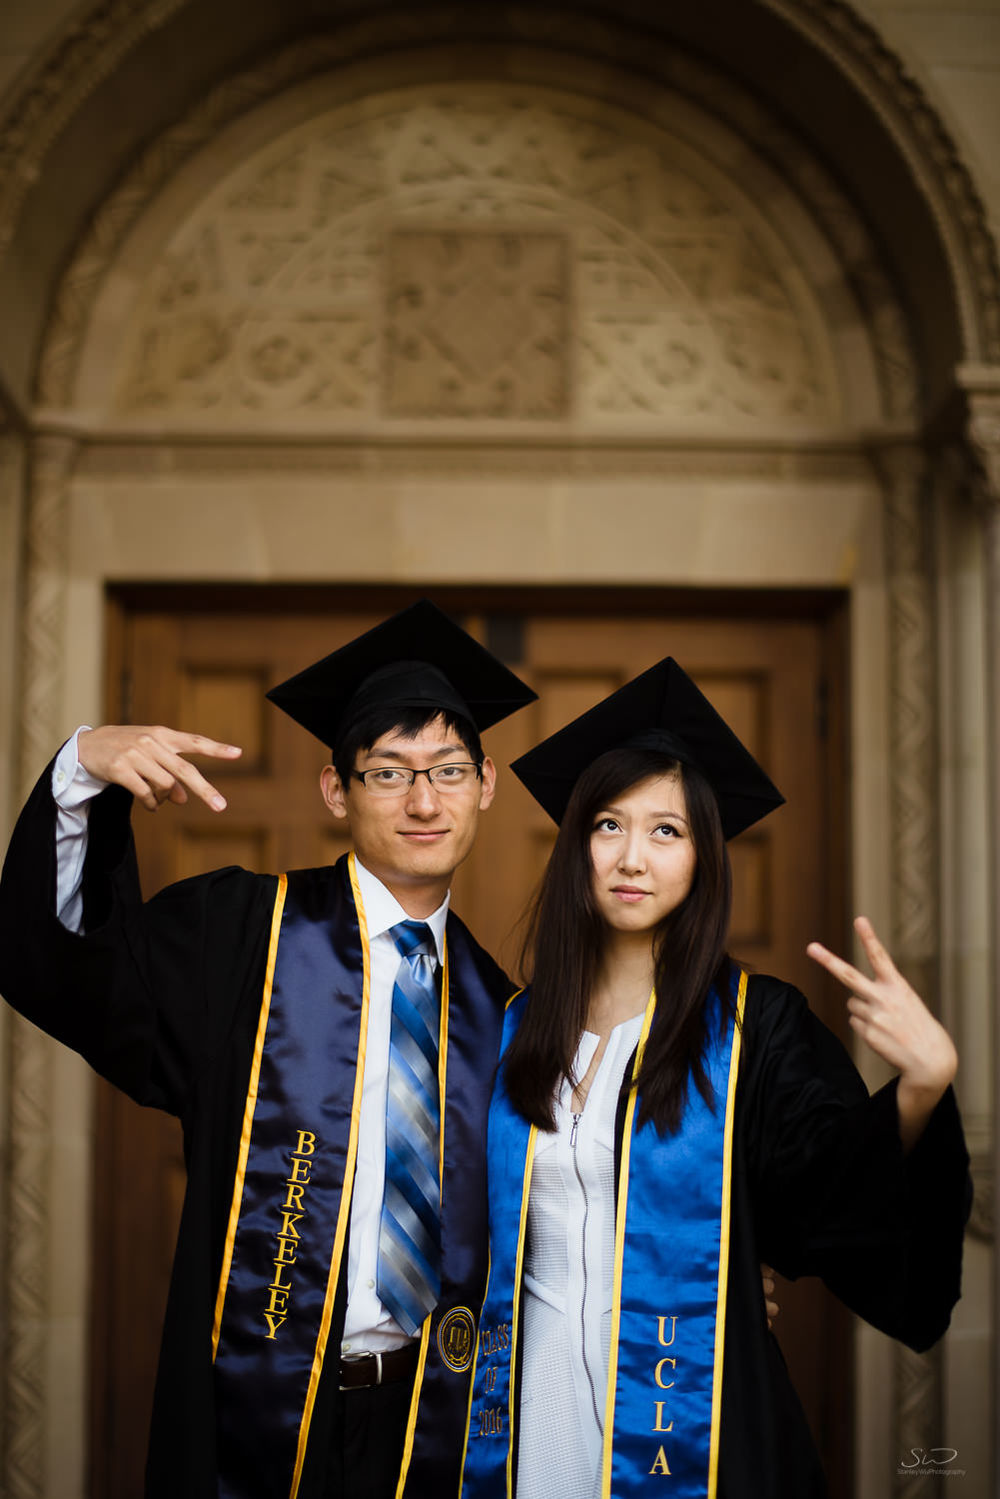 ucla-uc-berkeley-couple-grad-12.jpg